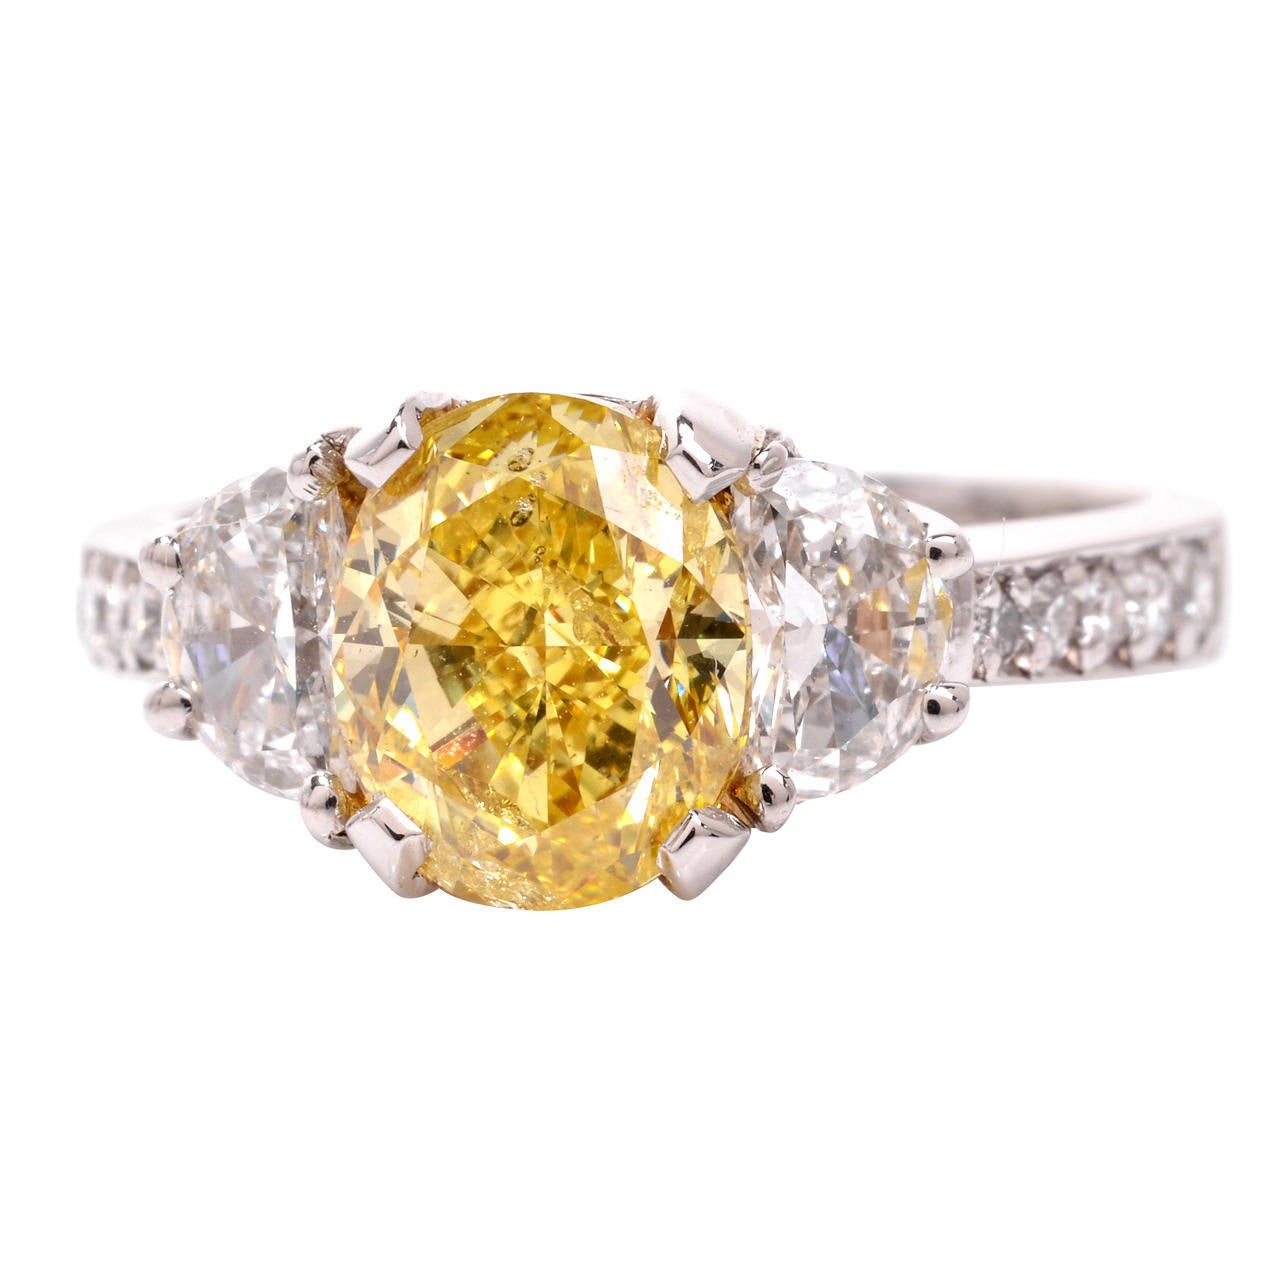 Natural Fancy Intense Yellow Diamond Platinum Engagement Ring at 1stdibs